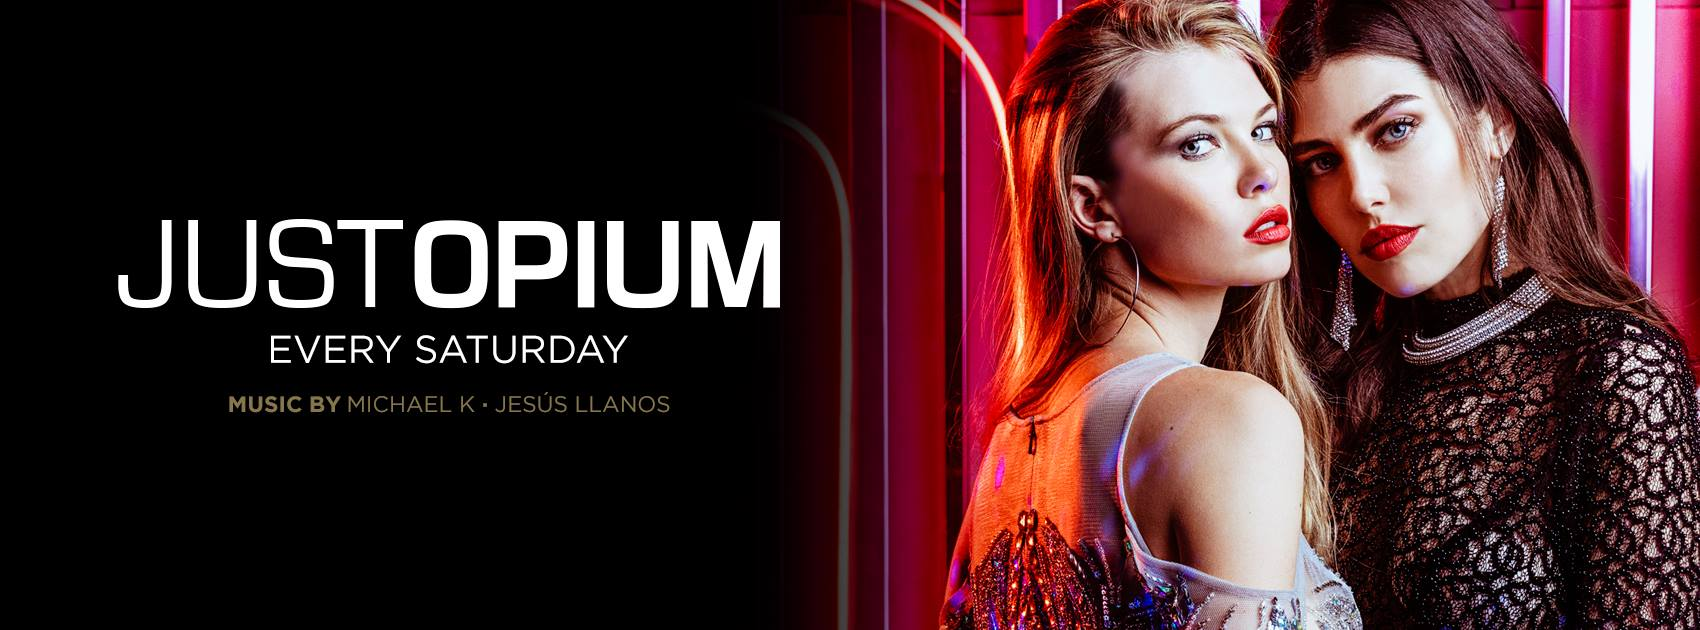 JUST OPIUM OPIUM MADRID